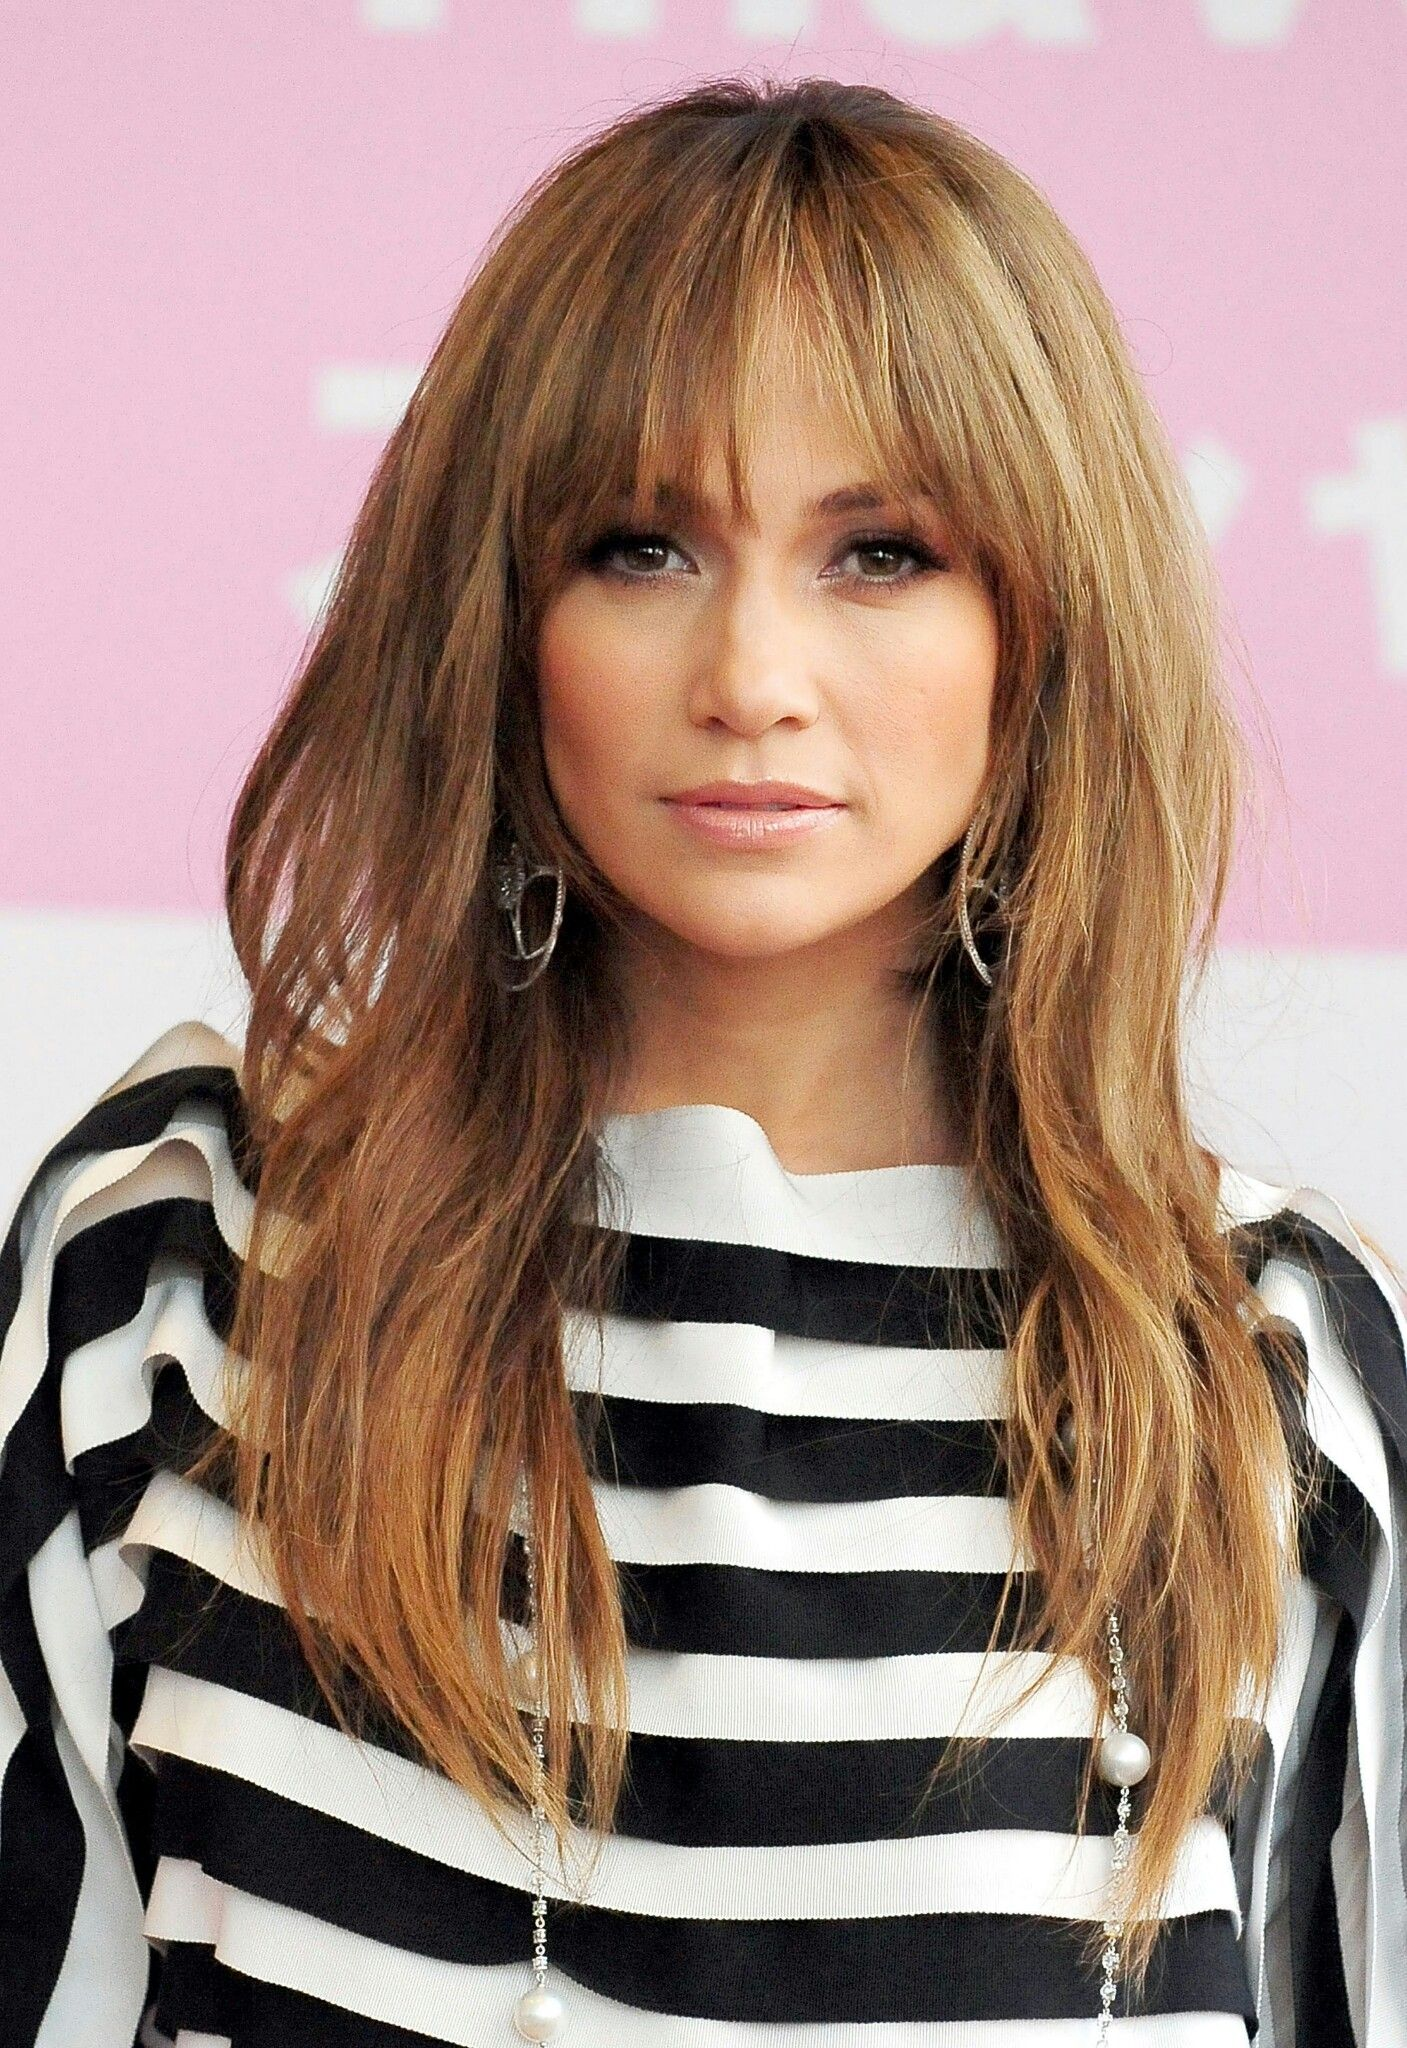 8 of the Most Stunning Full Fringe Hairstyles 2018 for Women with